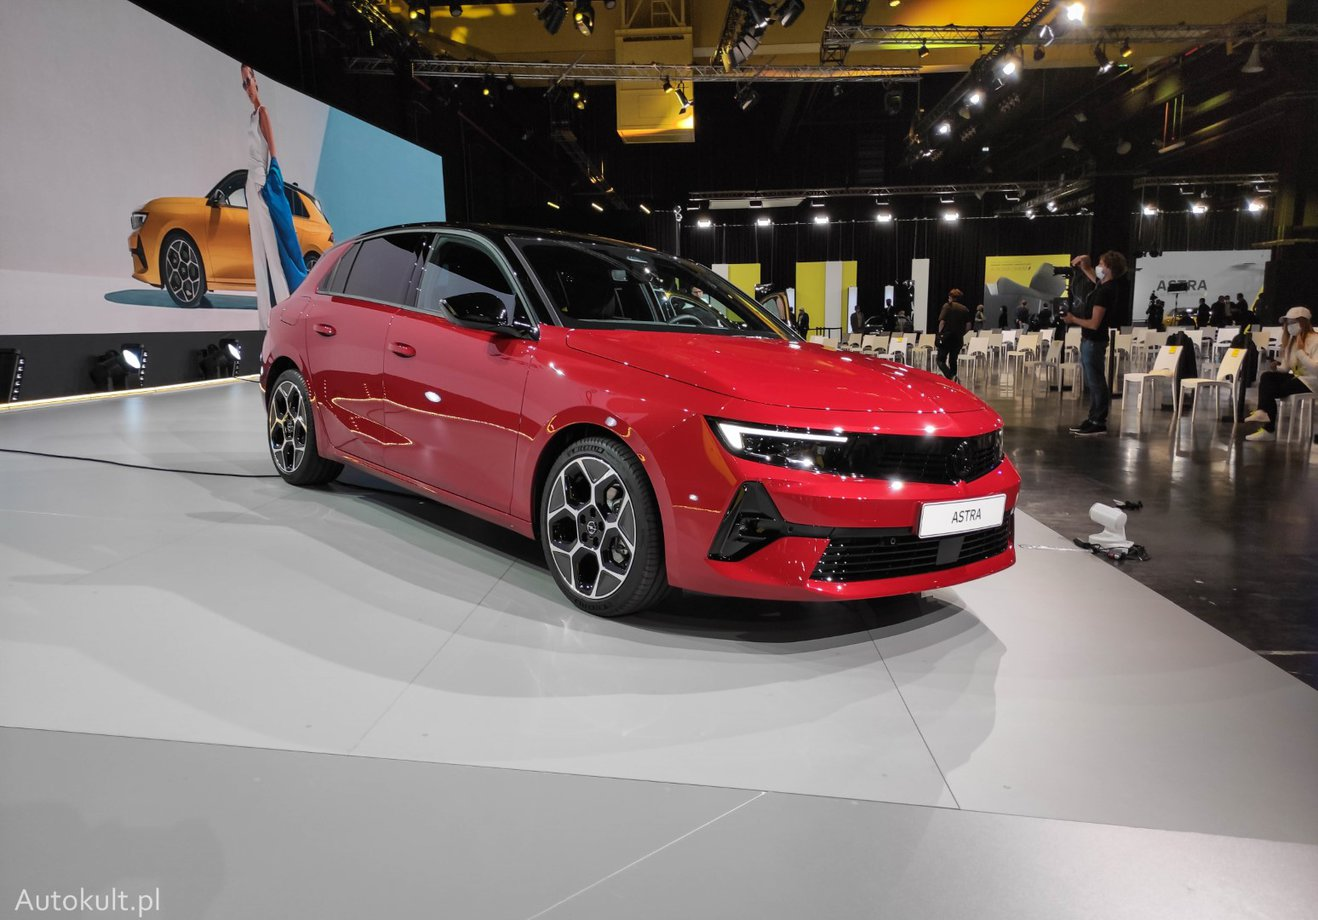 Re: 2021 - [Opel] Astra L [OV51/52] - Page 25 Img-20210901-144910-d6aac6916ba8,0,920,0,0